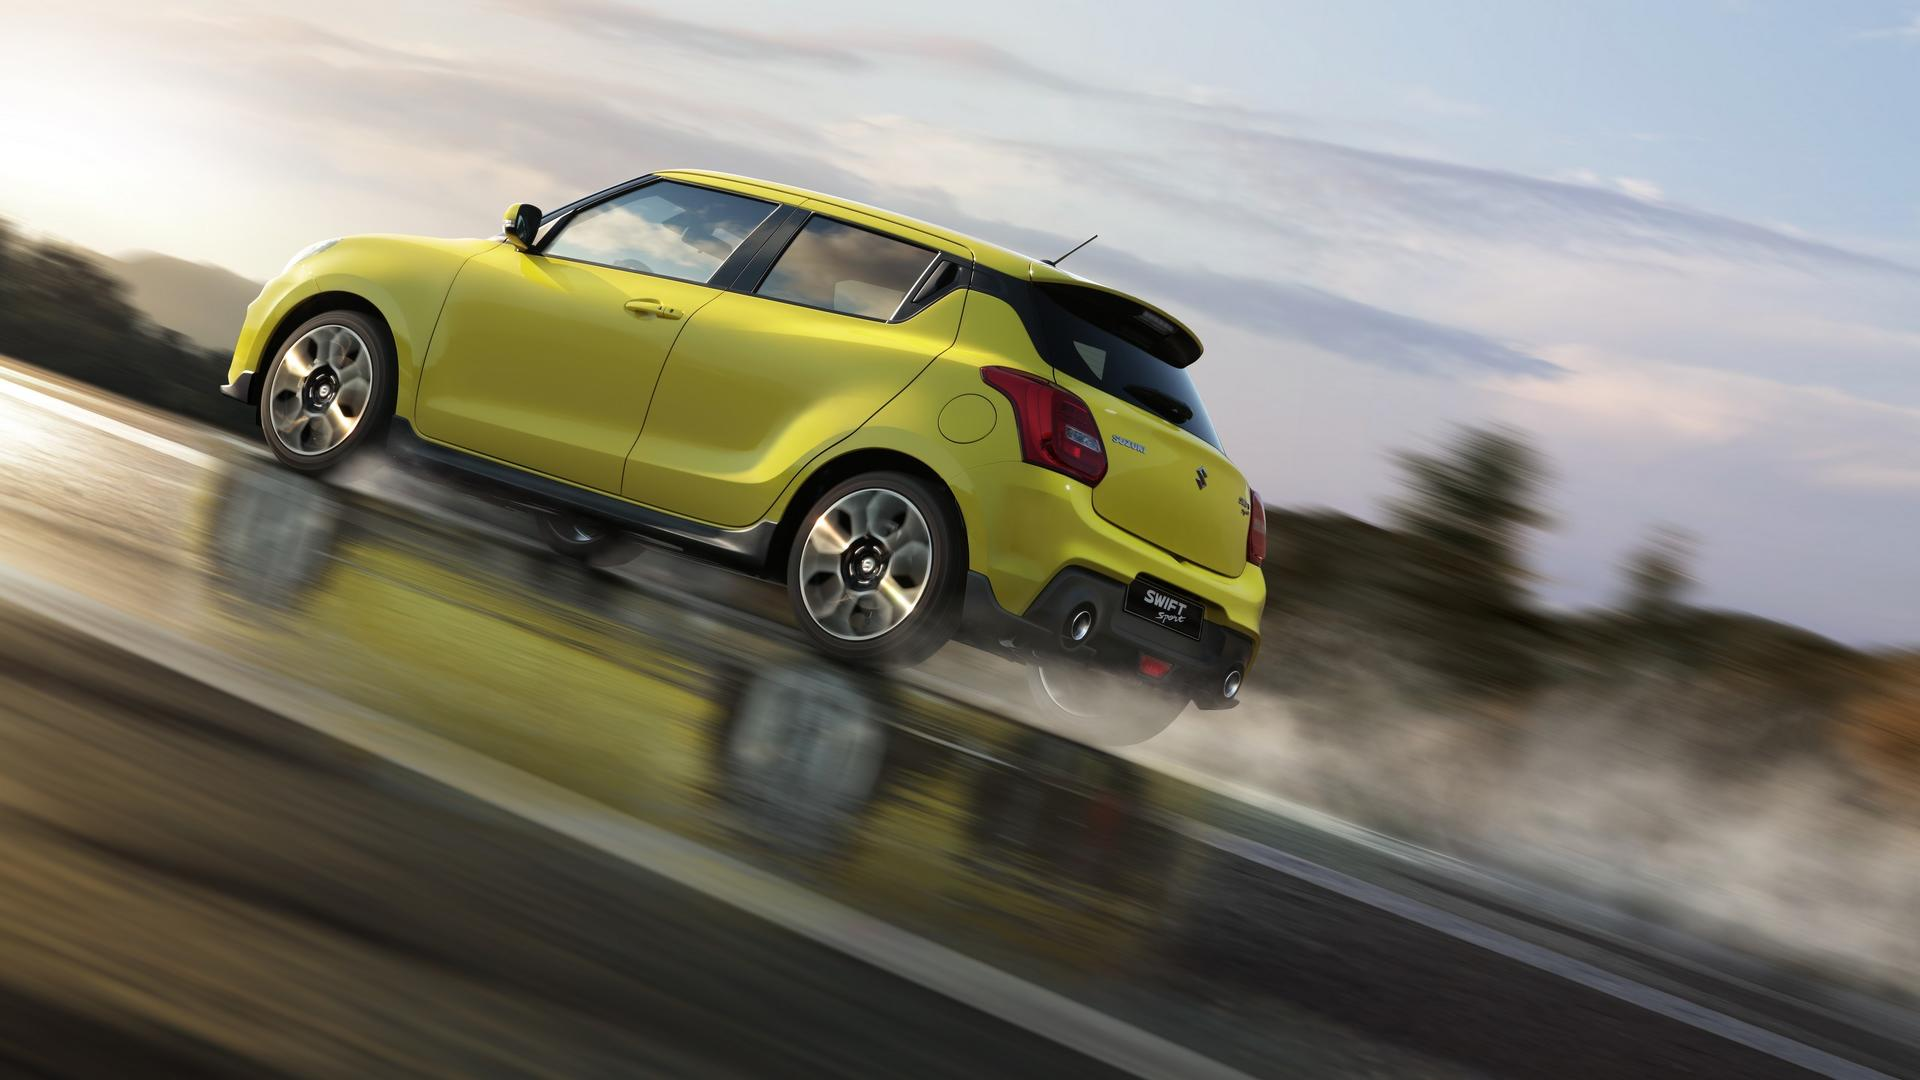 All New 2018 Suzuki Swift Sport Unveiled In Frankfurt Weighs Just 2000 Transmission Sd Sensor The Had Its Global Premiere At Motor Show Today Third Generation Features A Lower Wider Stance